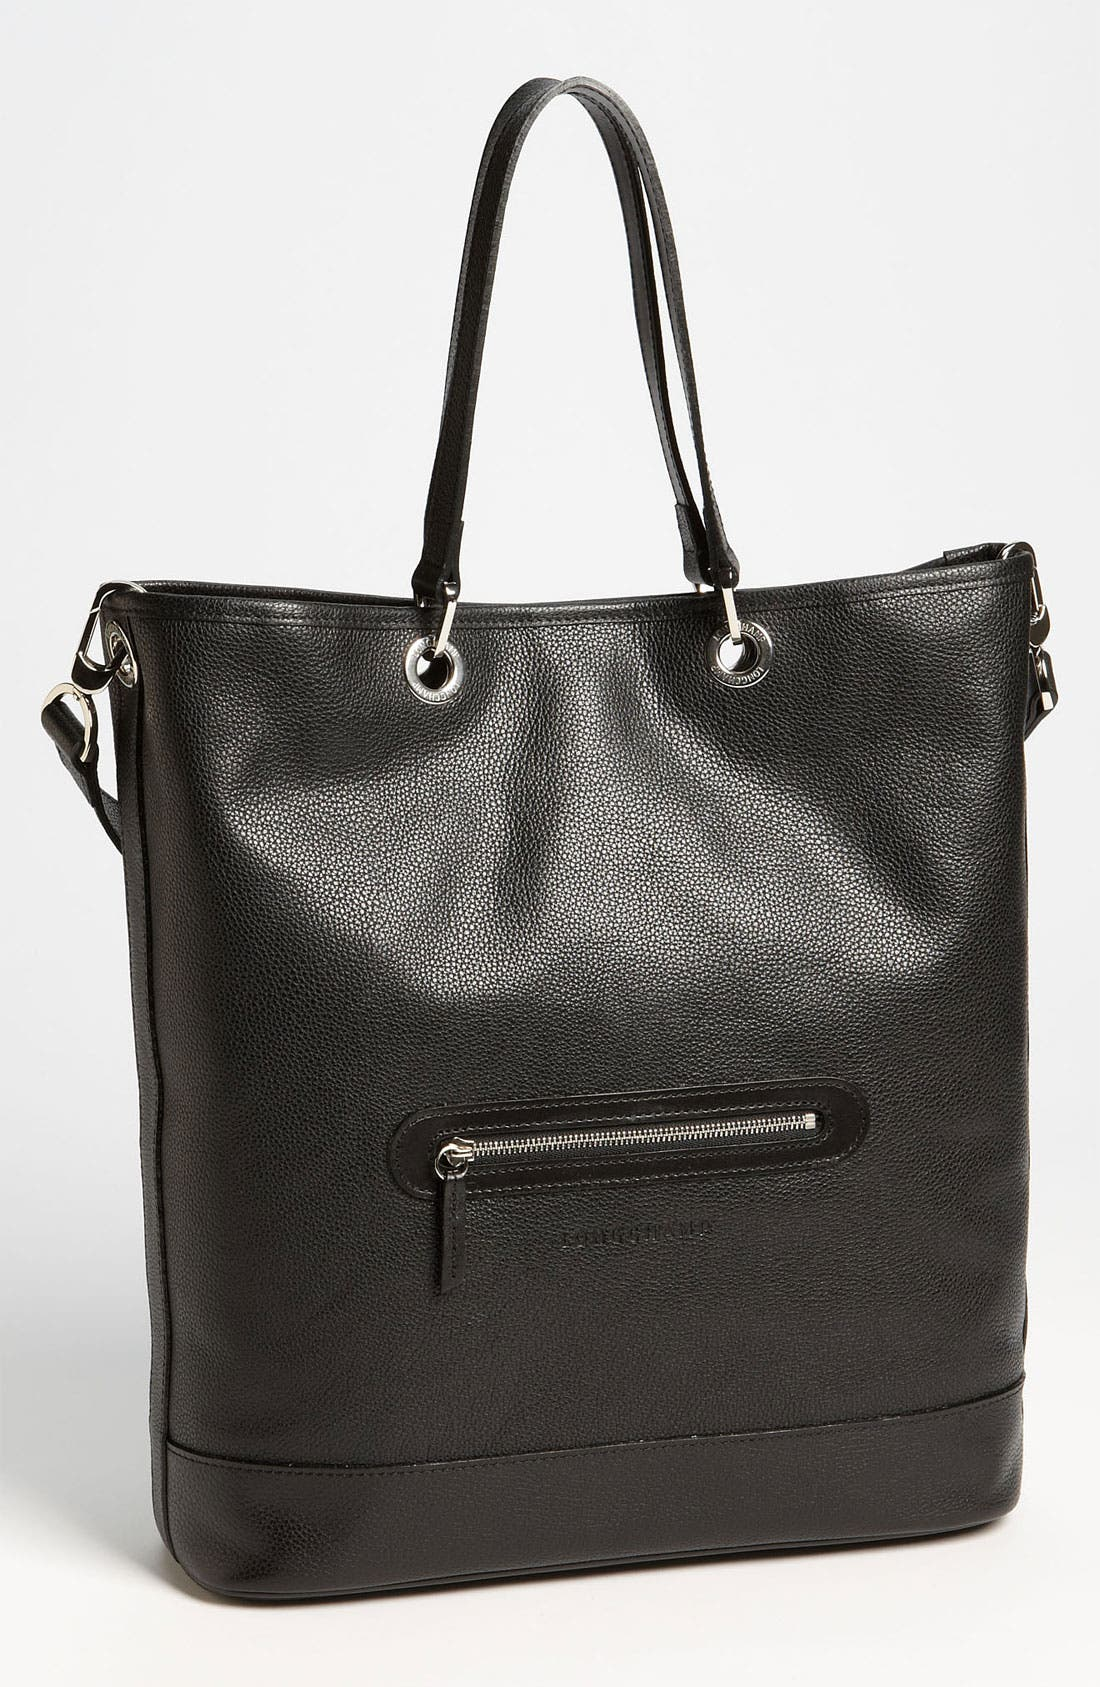 Main Image - Longchamp 'Veau Fouloneé' Leather Tote